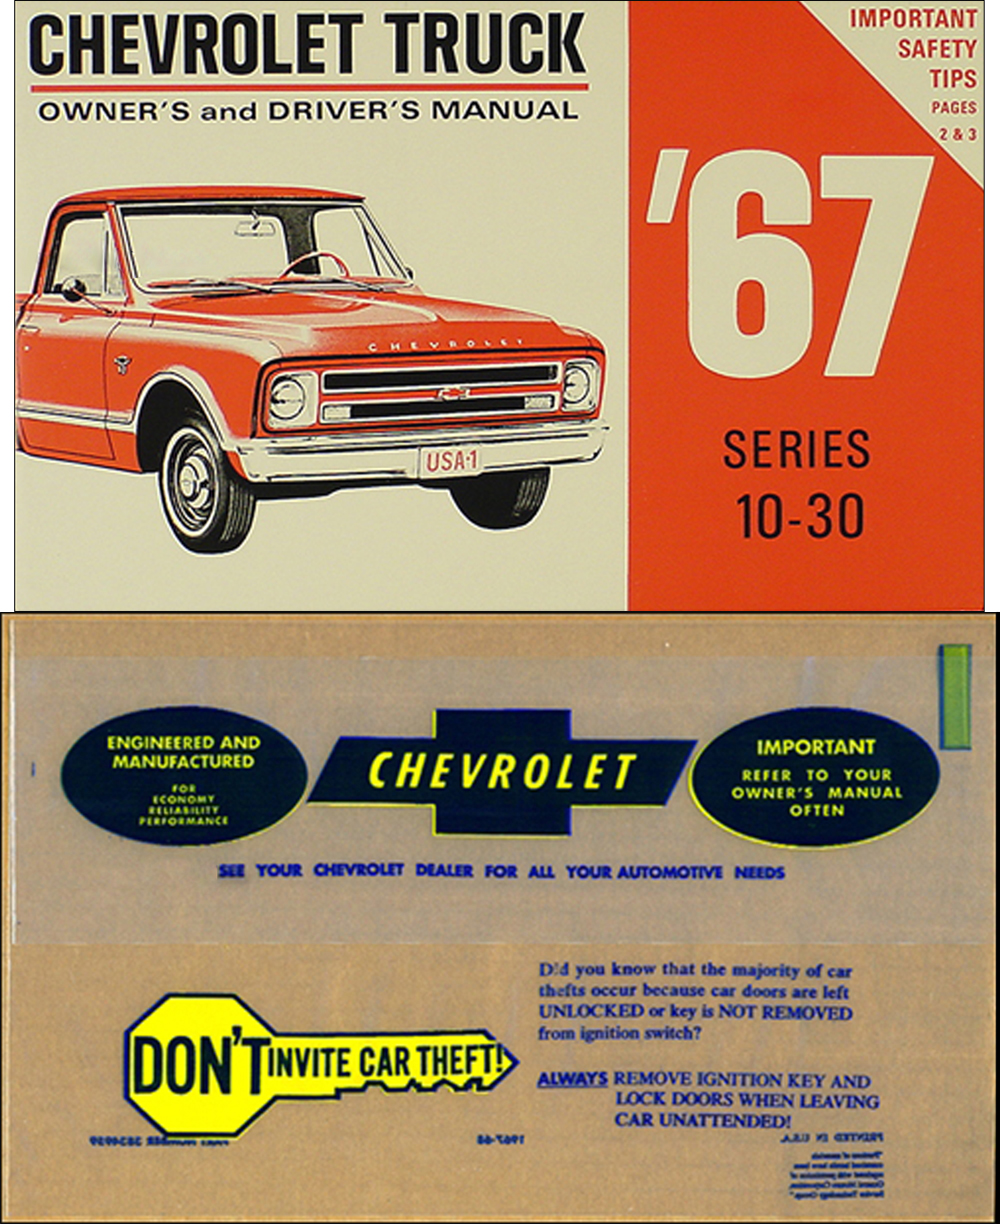 1967 Chevrolet ½-, ¾-, & 1-ton Truck Owner's Manual Package